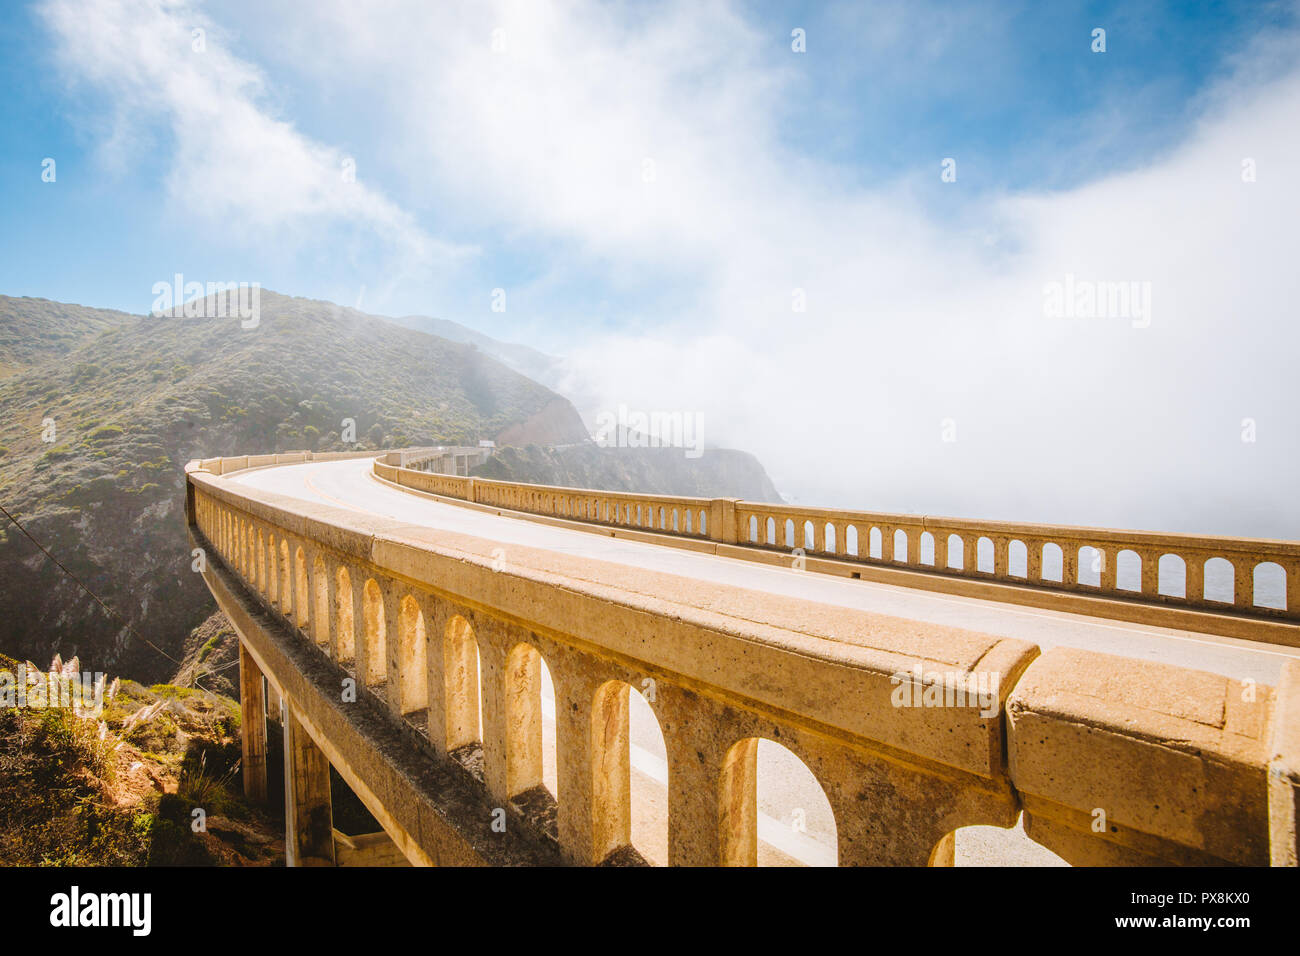 Panoramic view of historic Bixby Creek Bridge along world famous Highway 1 on a sunny day with fog in summer, Monterey County, California, USA Stock Photo